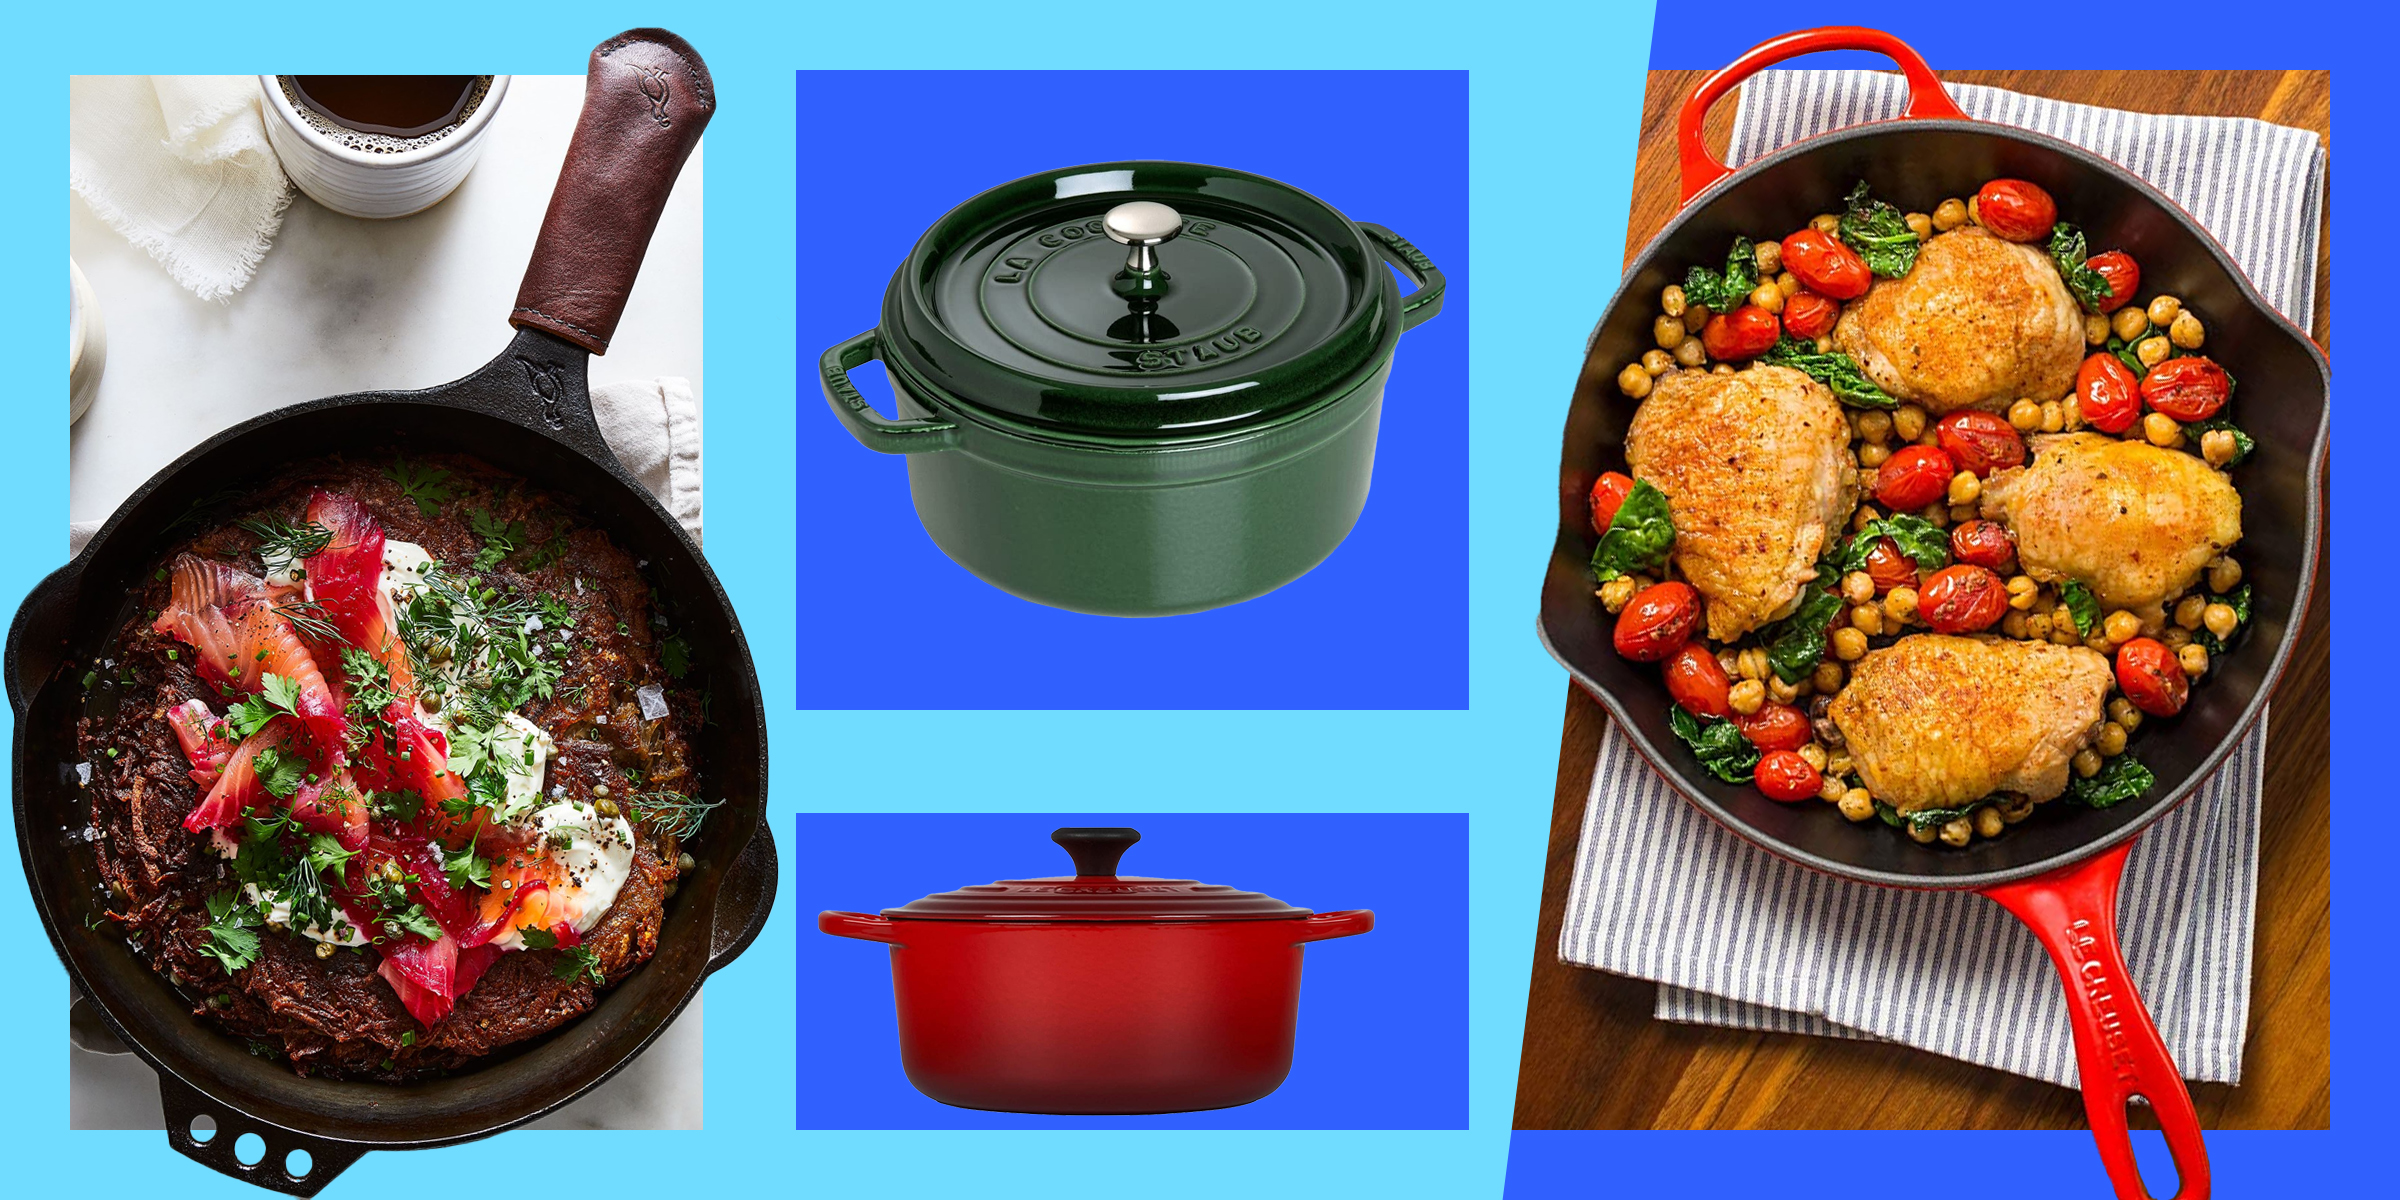 The Best Cast Iron Cookware According To Chefs And Experts